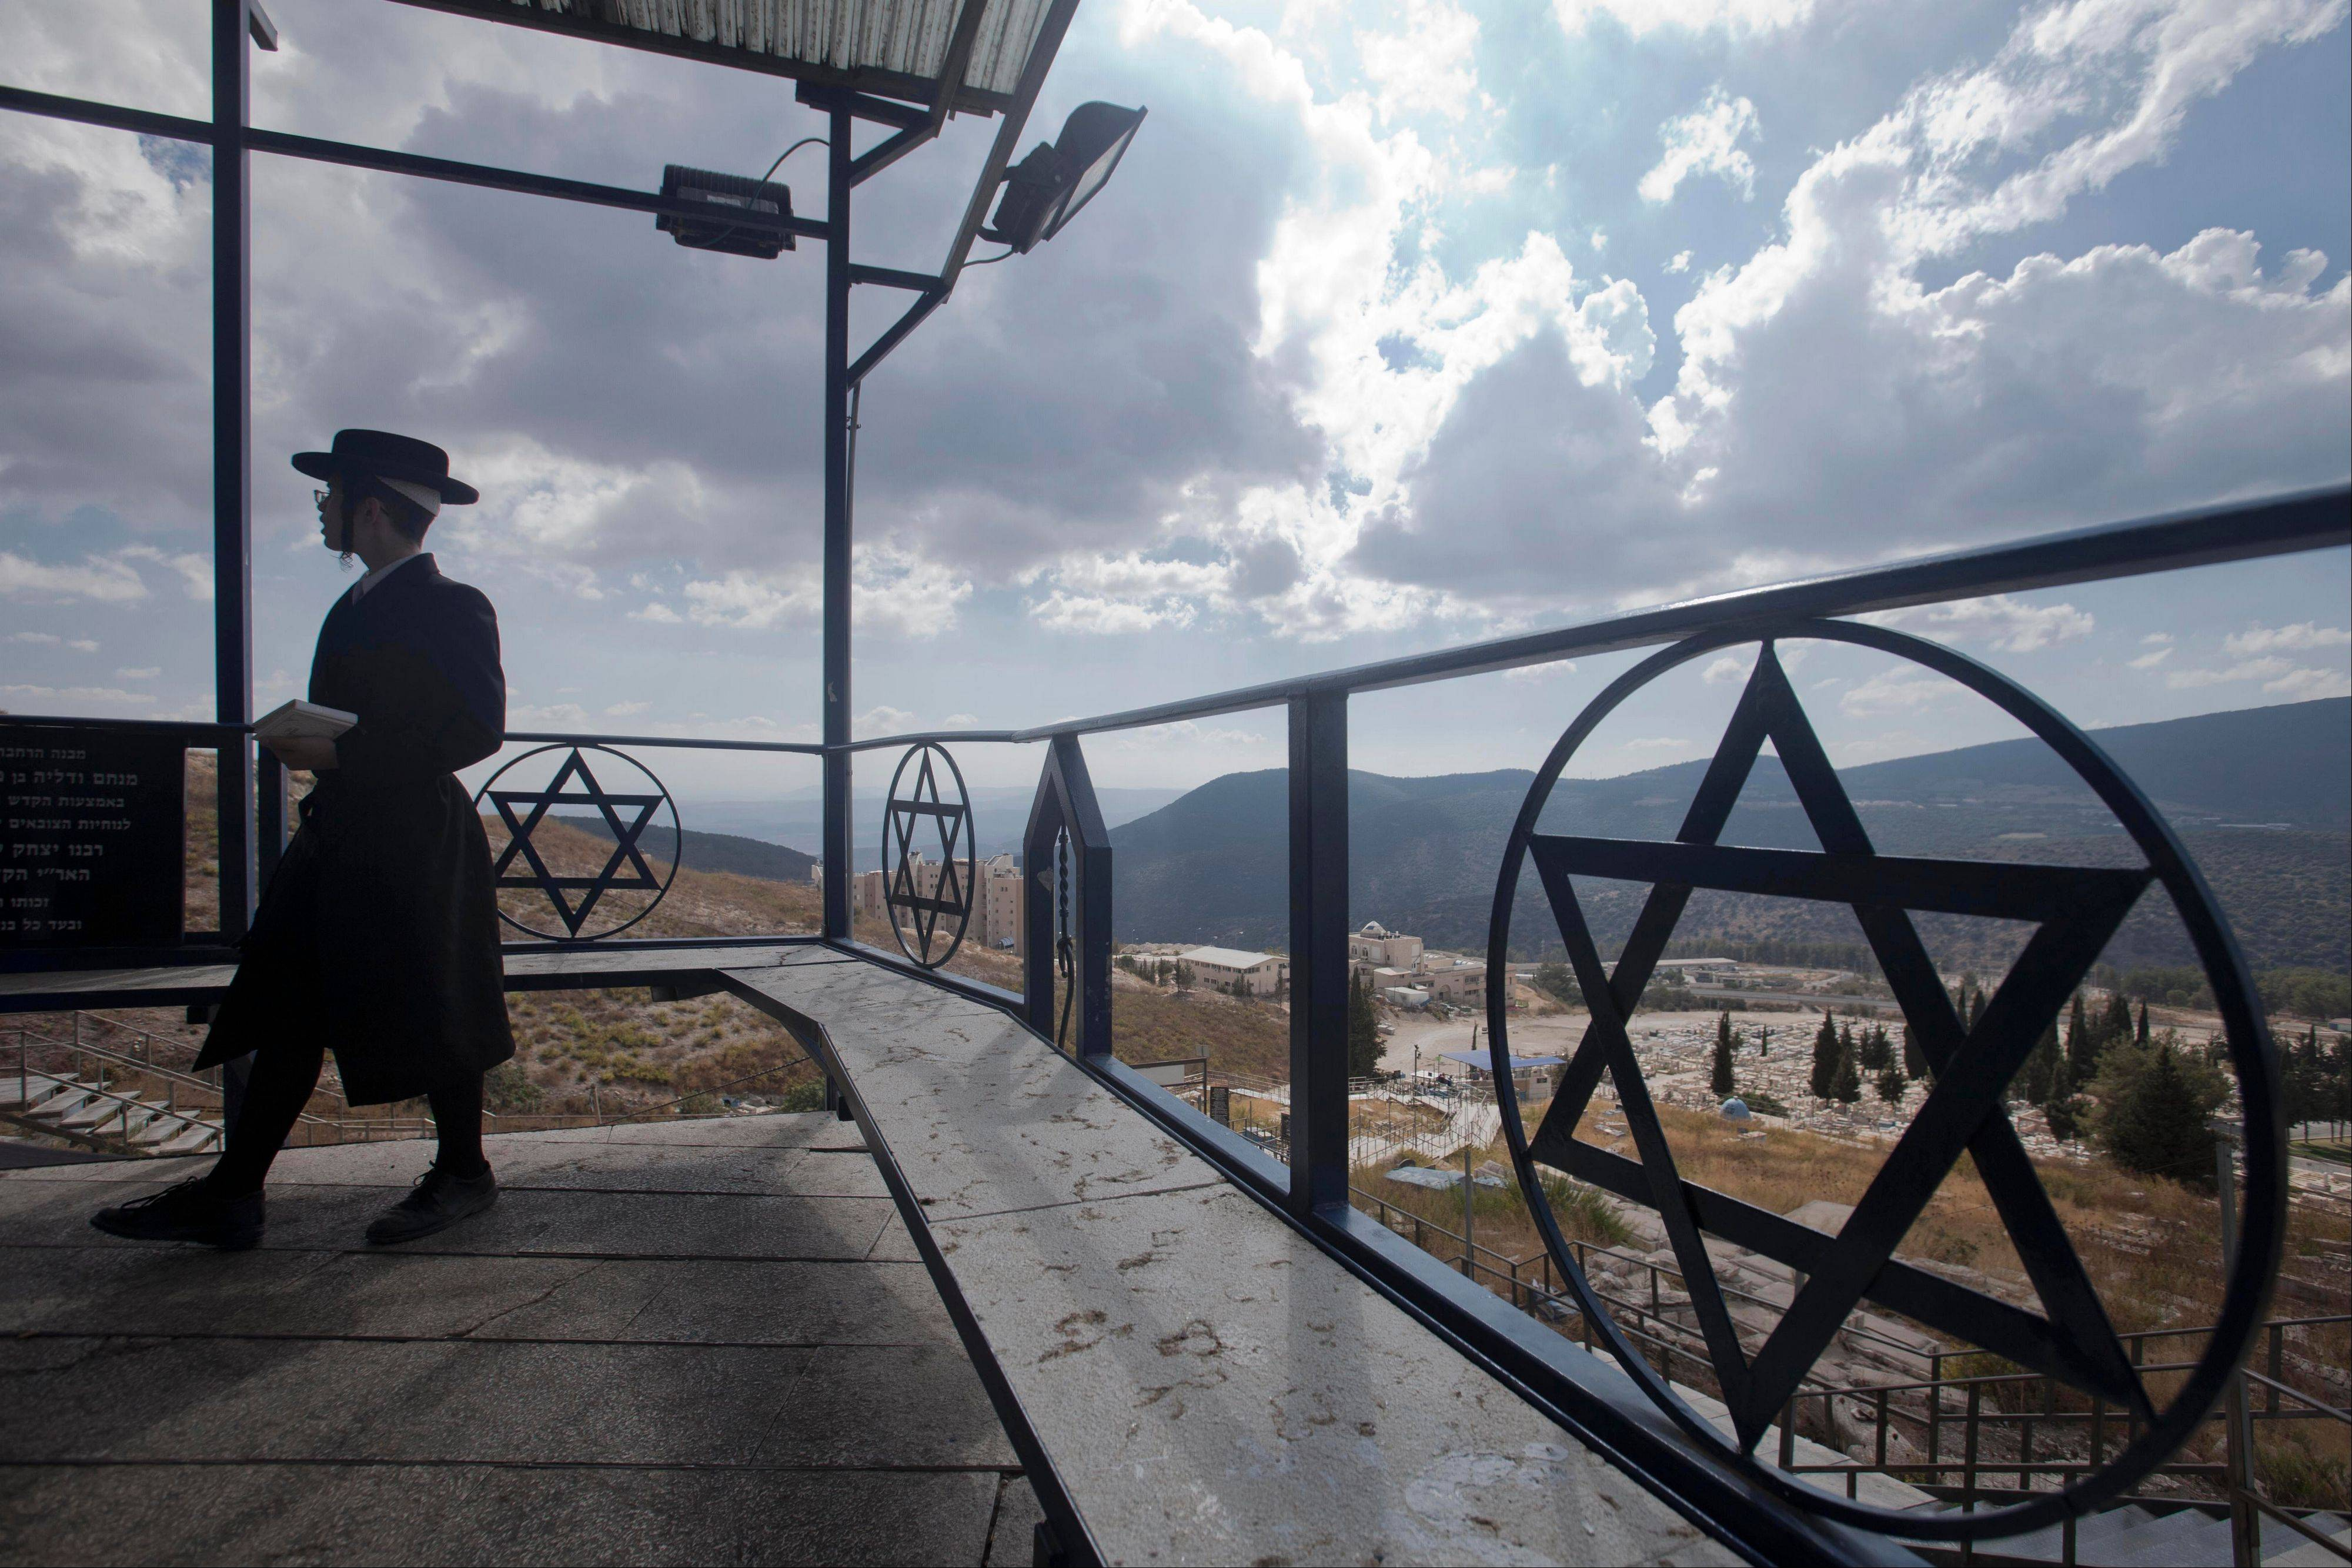 An Ultra orthodox Jew visits the Ari cemetery in Safed, Israel, a popular destination for all kabbalah. or Jewish mysticism, followers.